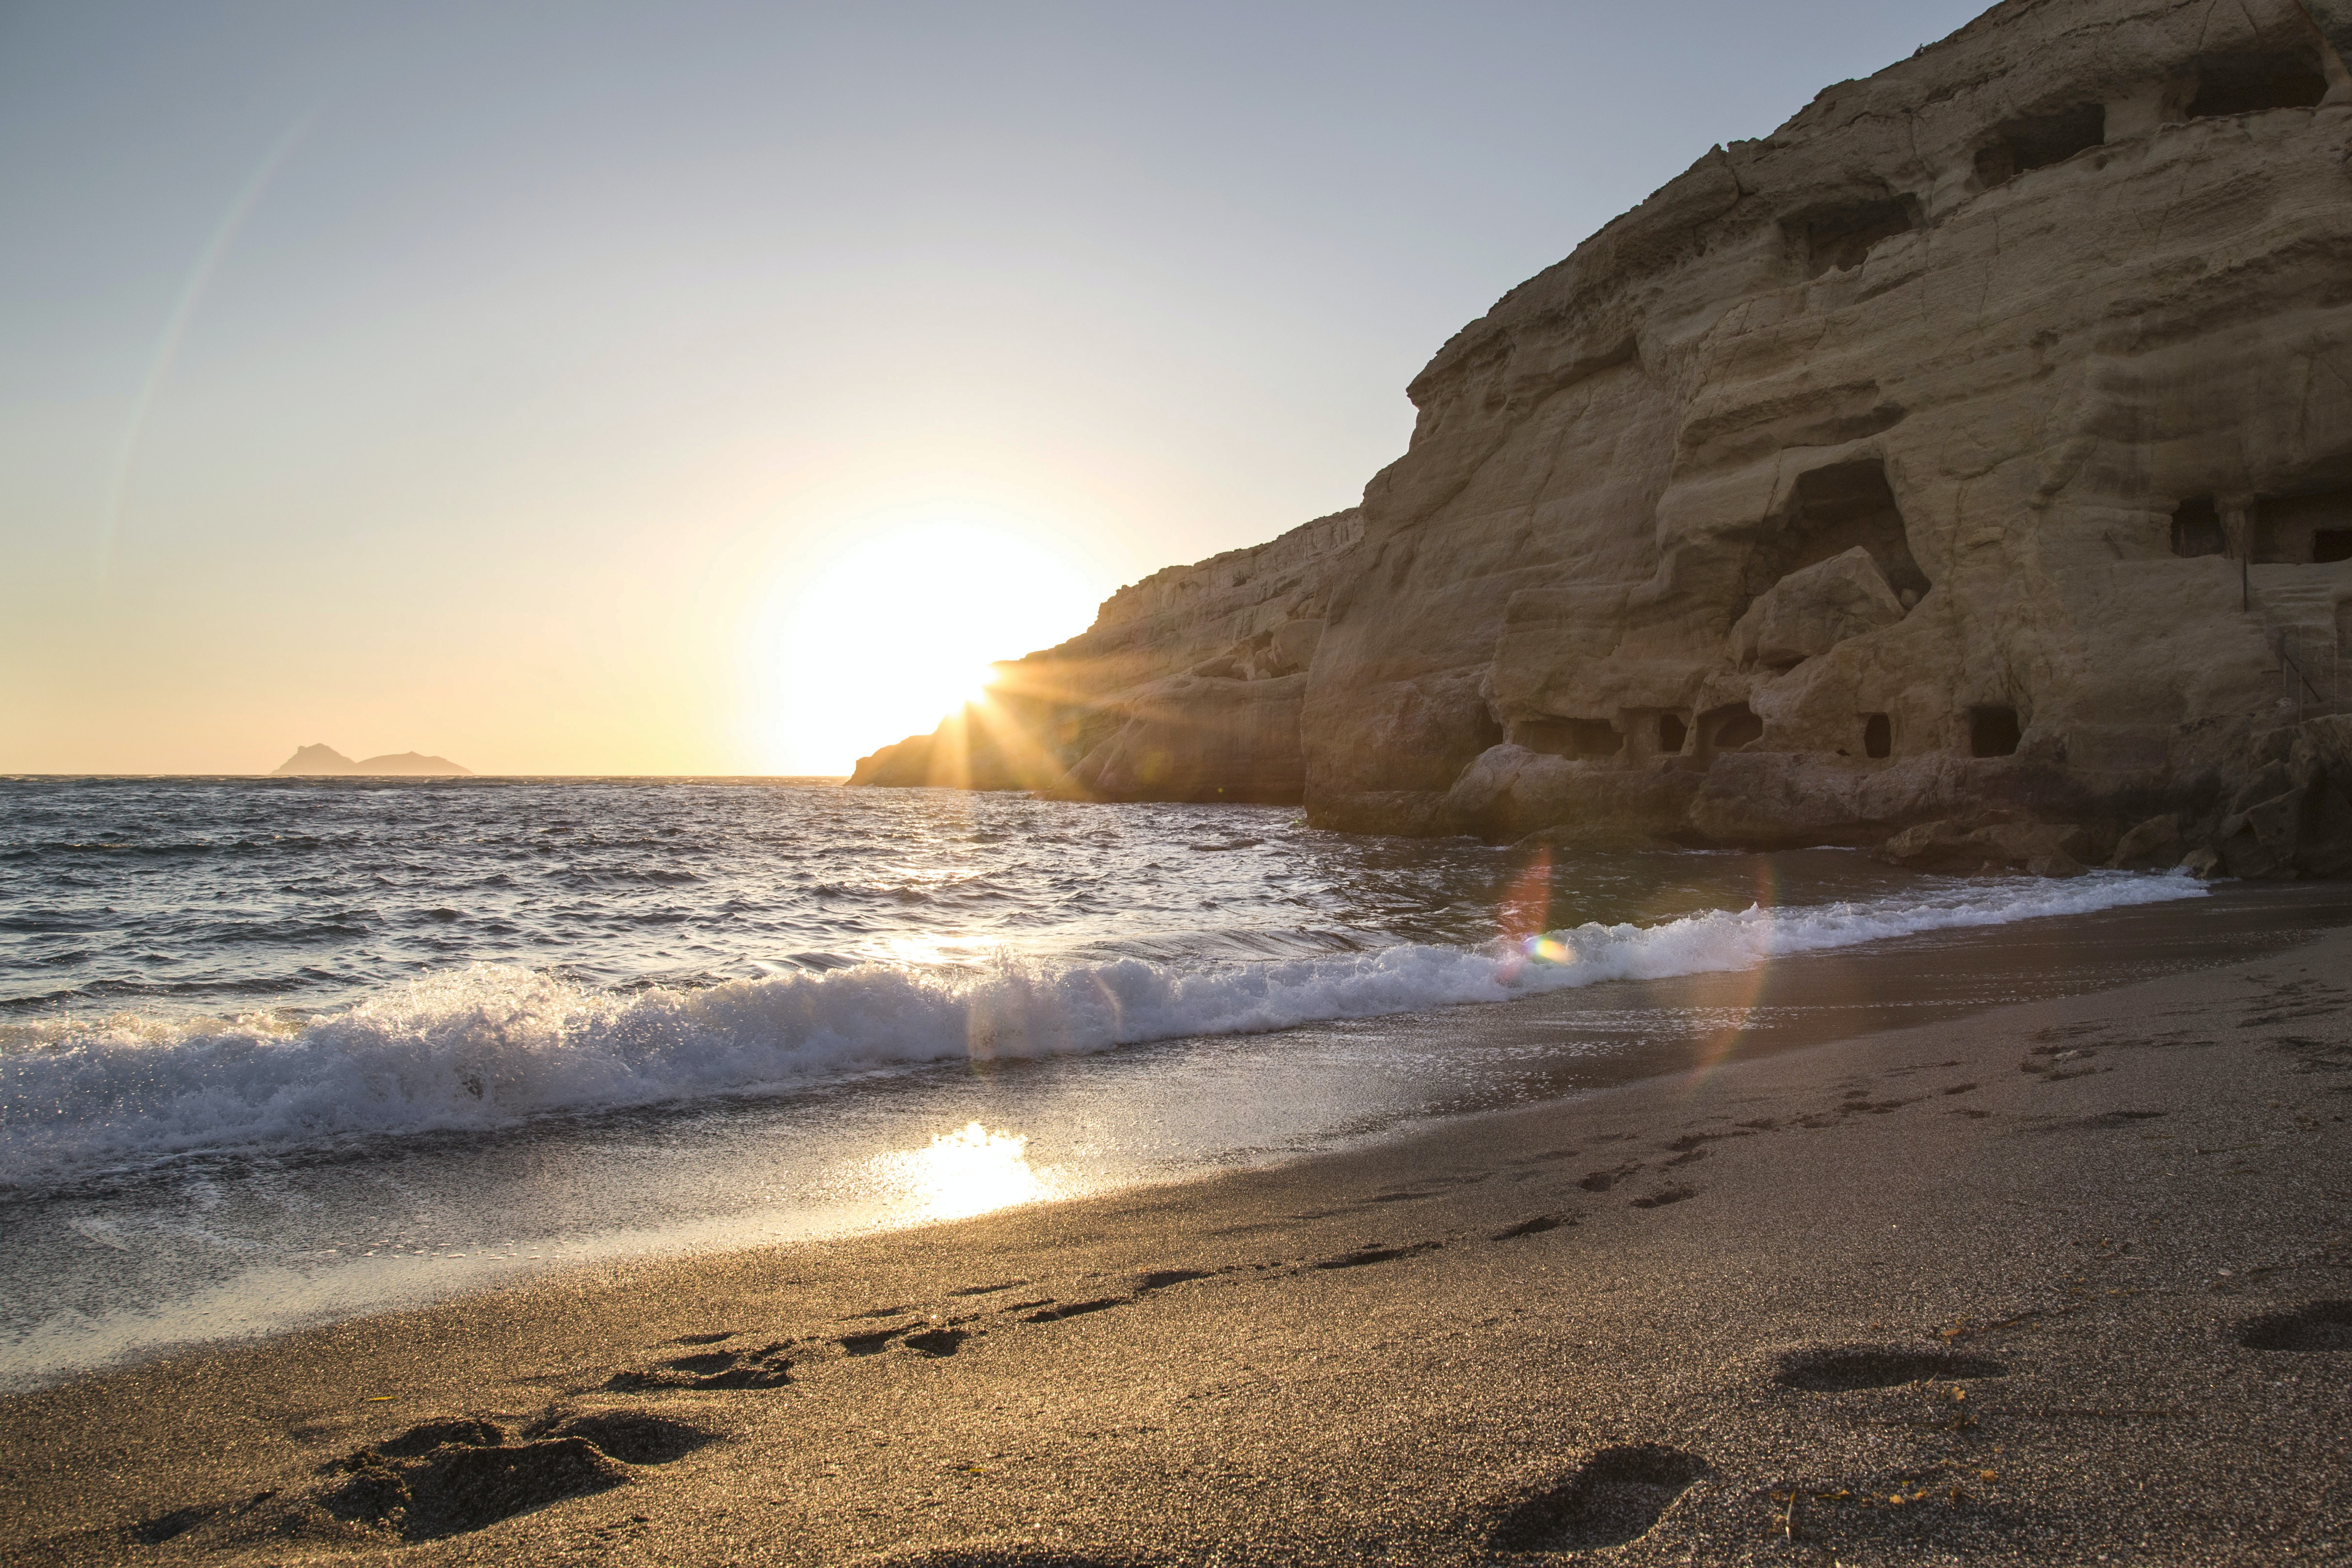 A course sand beach in Matala, with foot marks along the shoreline leading toward a large rock coastline. Small waves crash into shore and the bright sunrise-or-sunset creates a yellow glare in the clear, pale blue sky